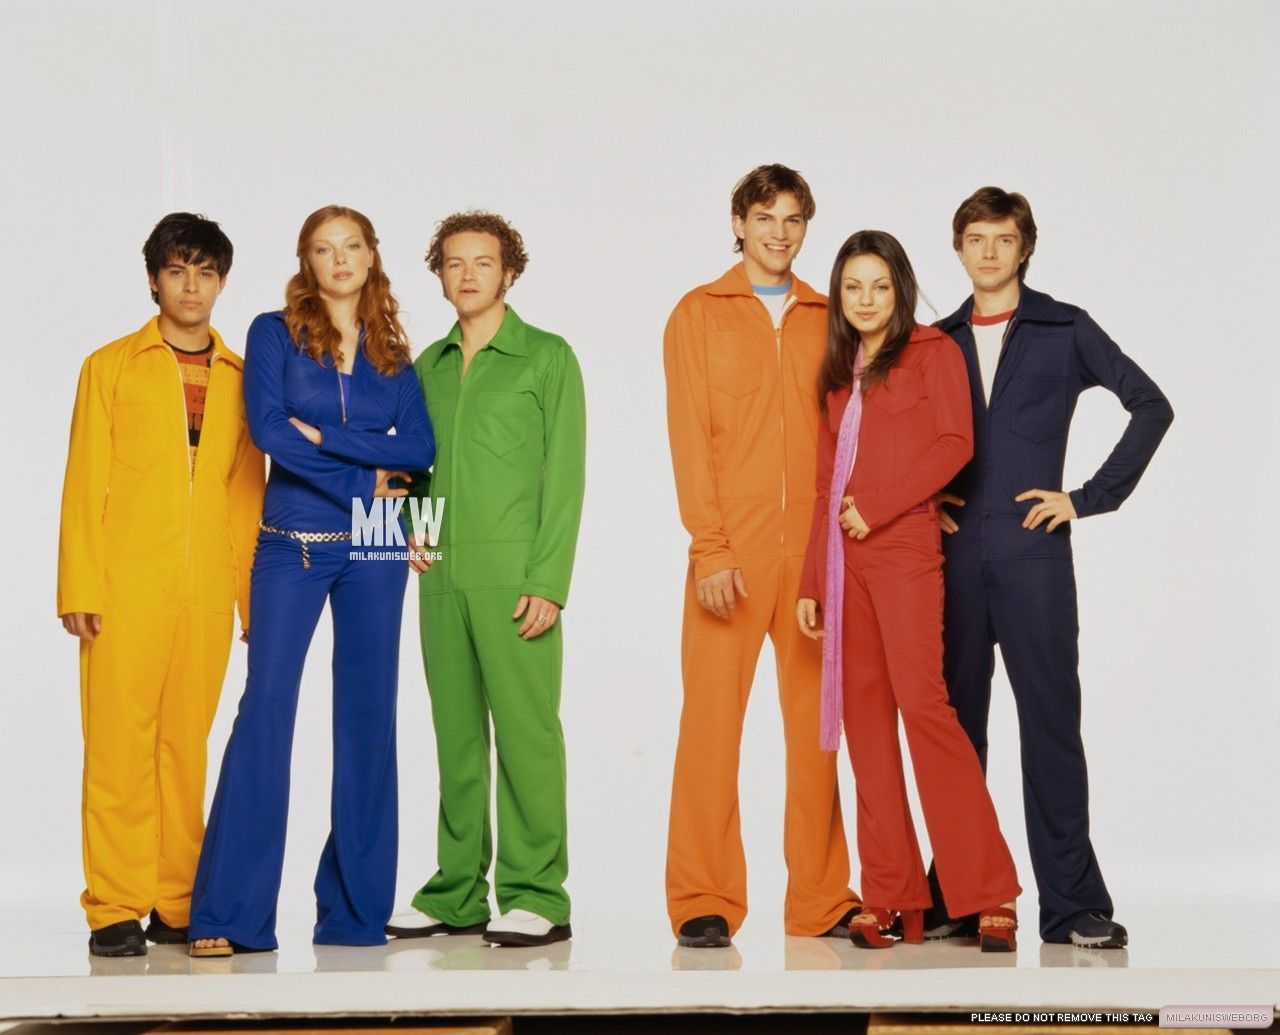 That '70s Show Cast - B. Reitzel Photoshoot for TV Guide 2001